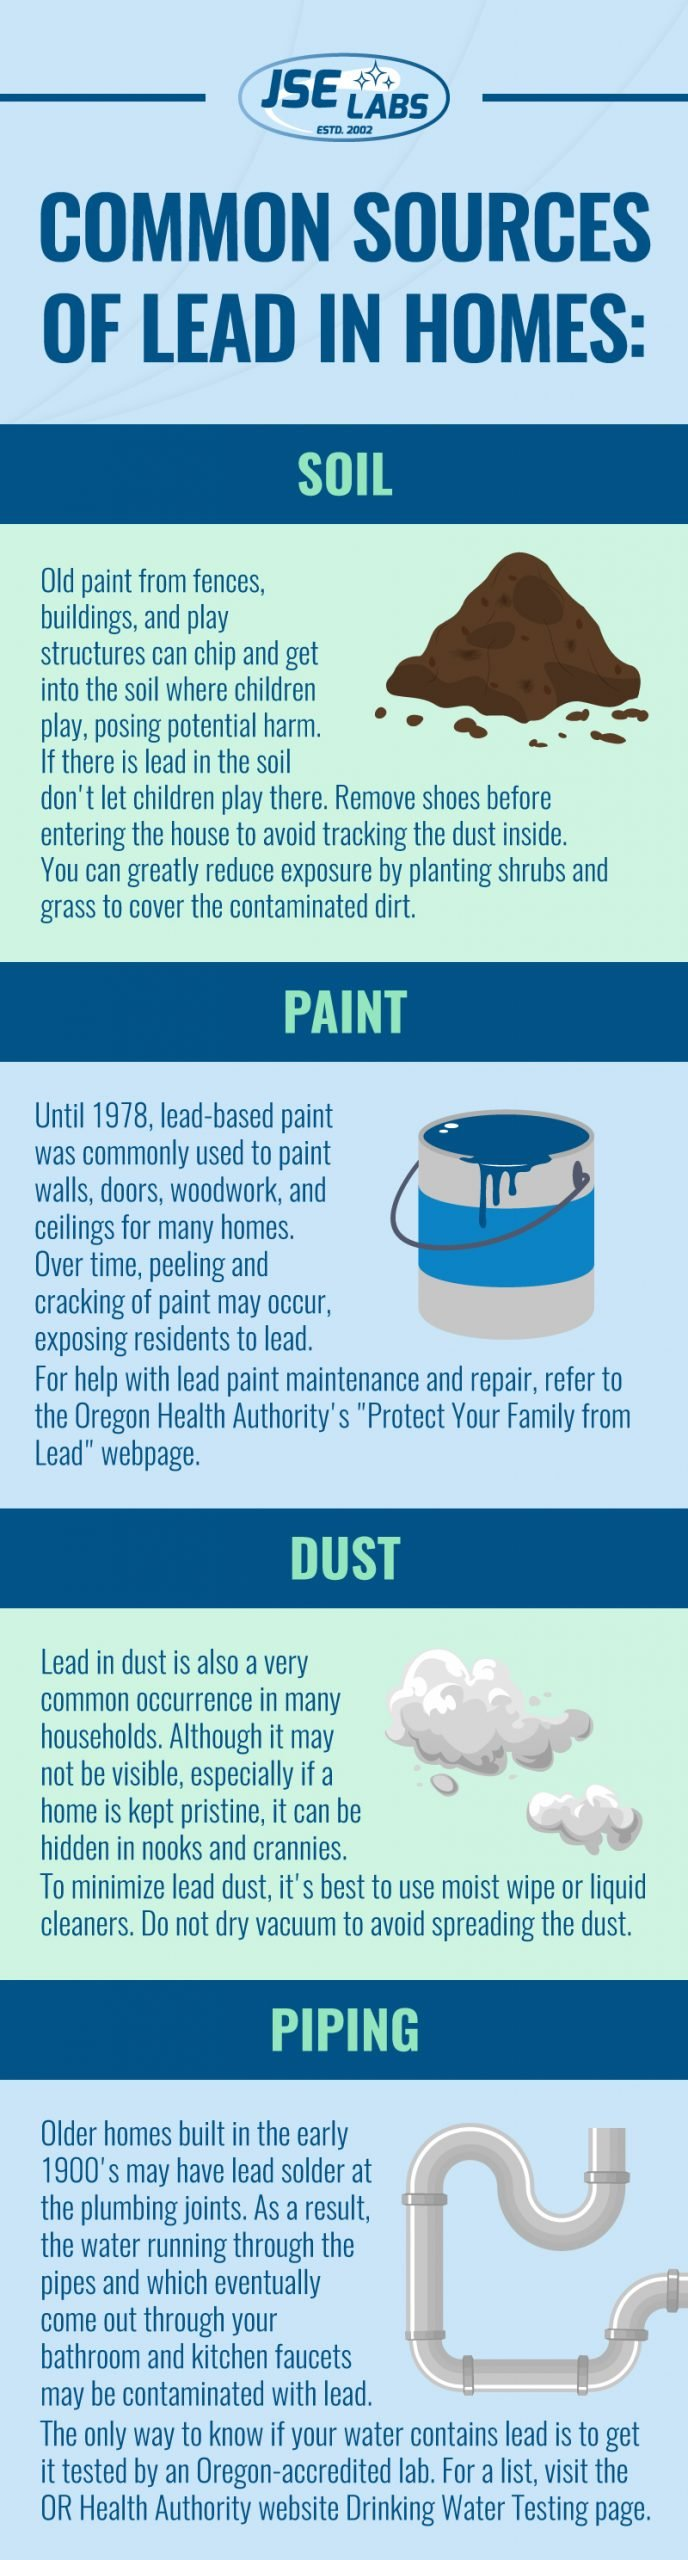 infographic about the 4 common sources of lead in a home